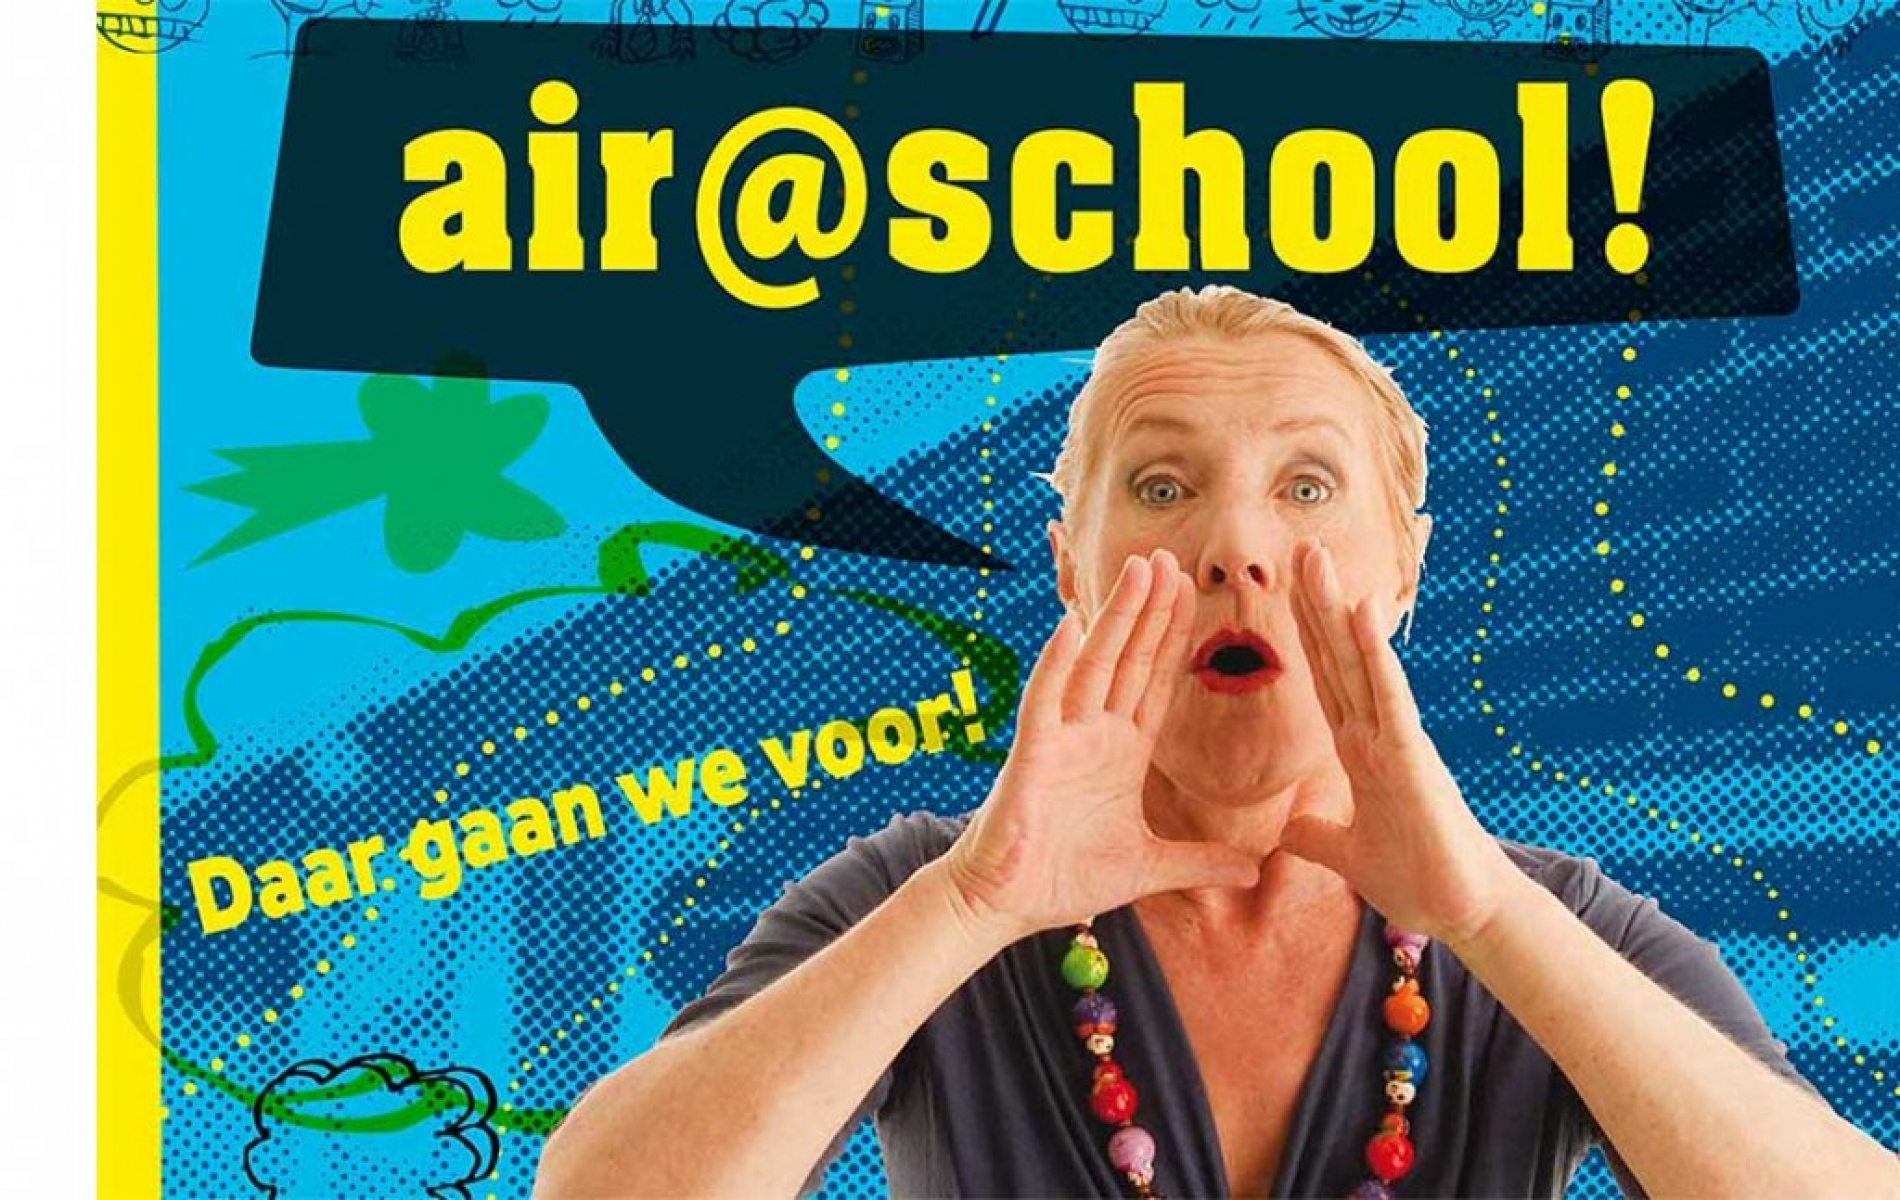 Campagne Air@school